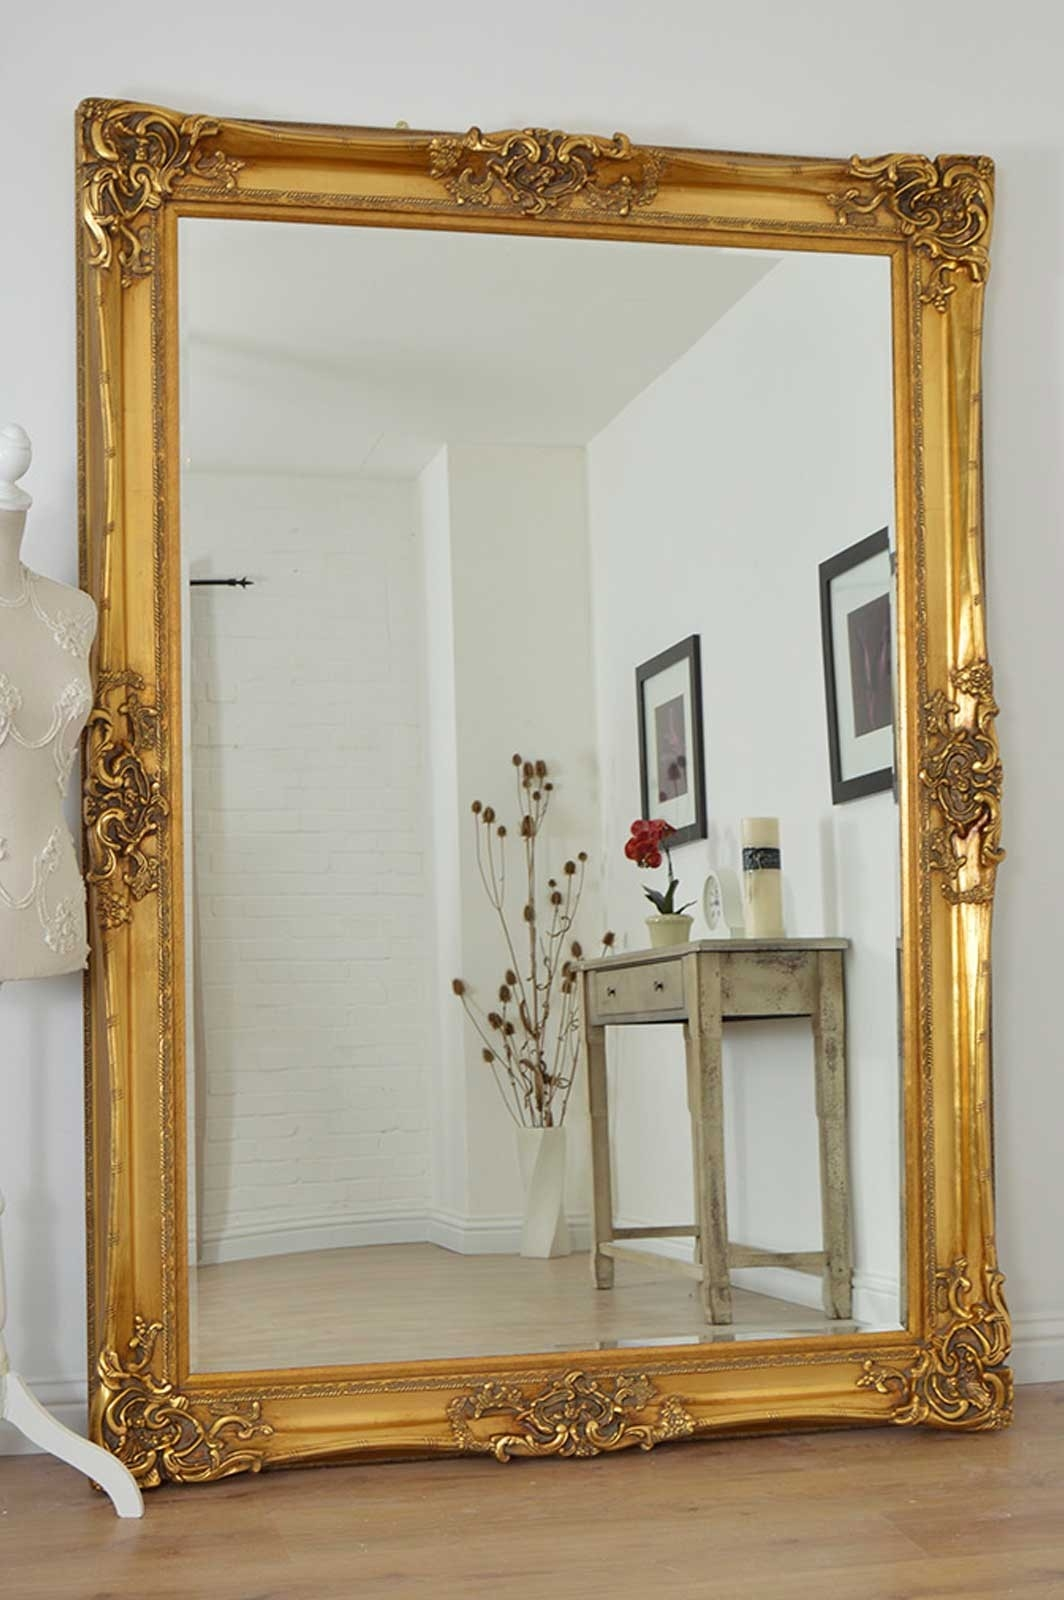 Large Antique Wall Mirror Ornate Frame